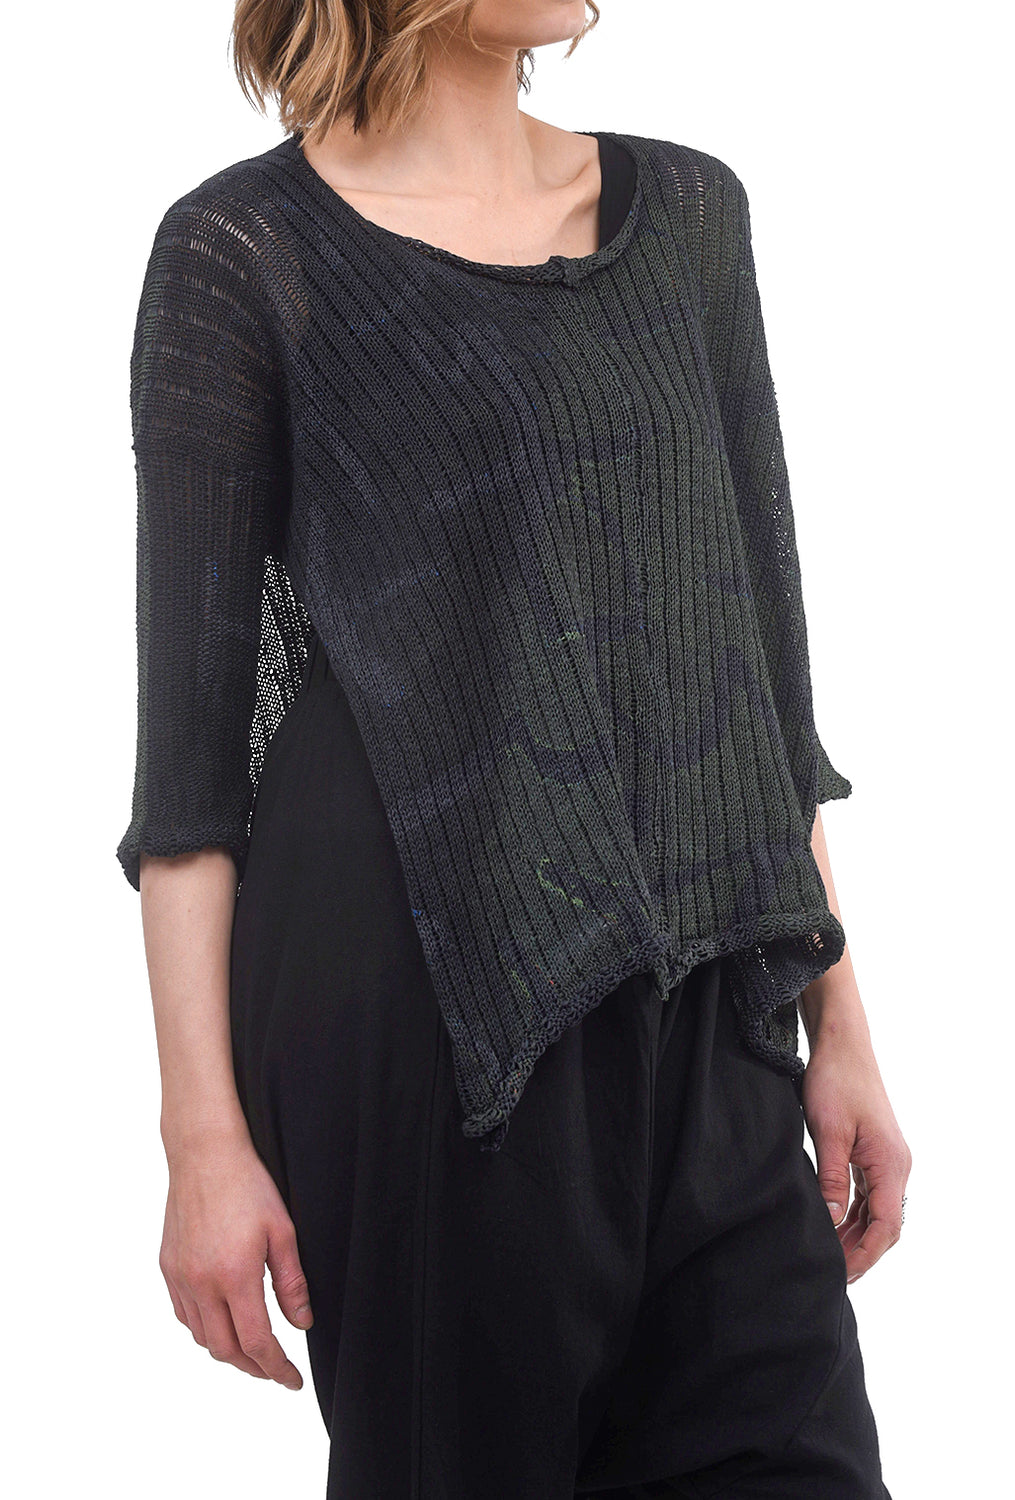 Skif International Sia Scoop Sweater, Dark Gray Klee One Size Gray